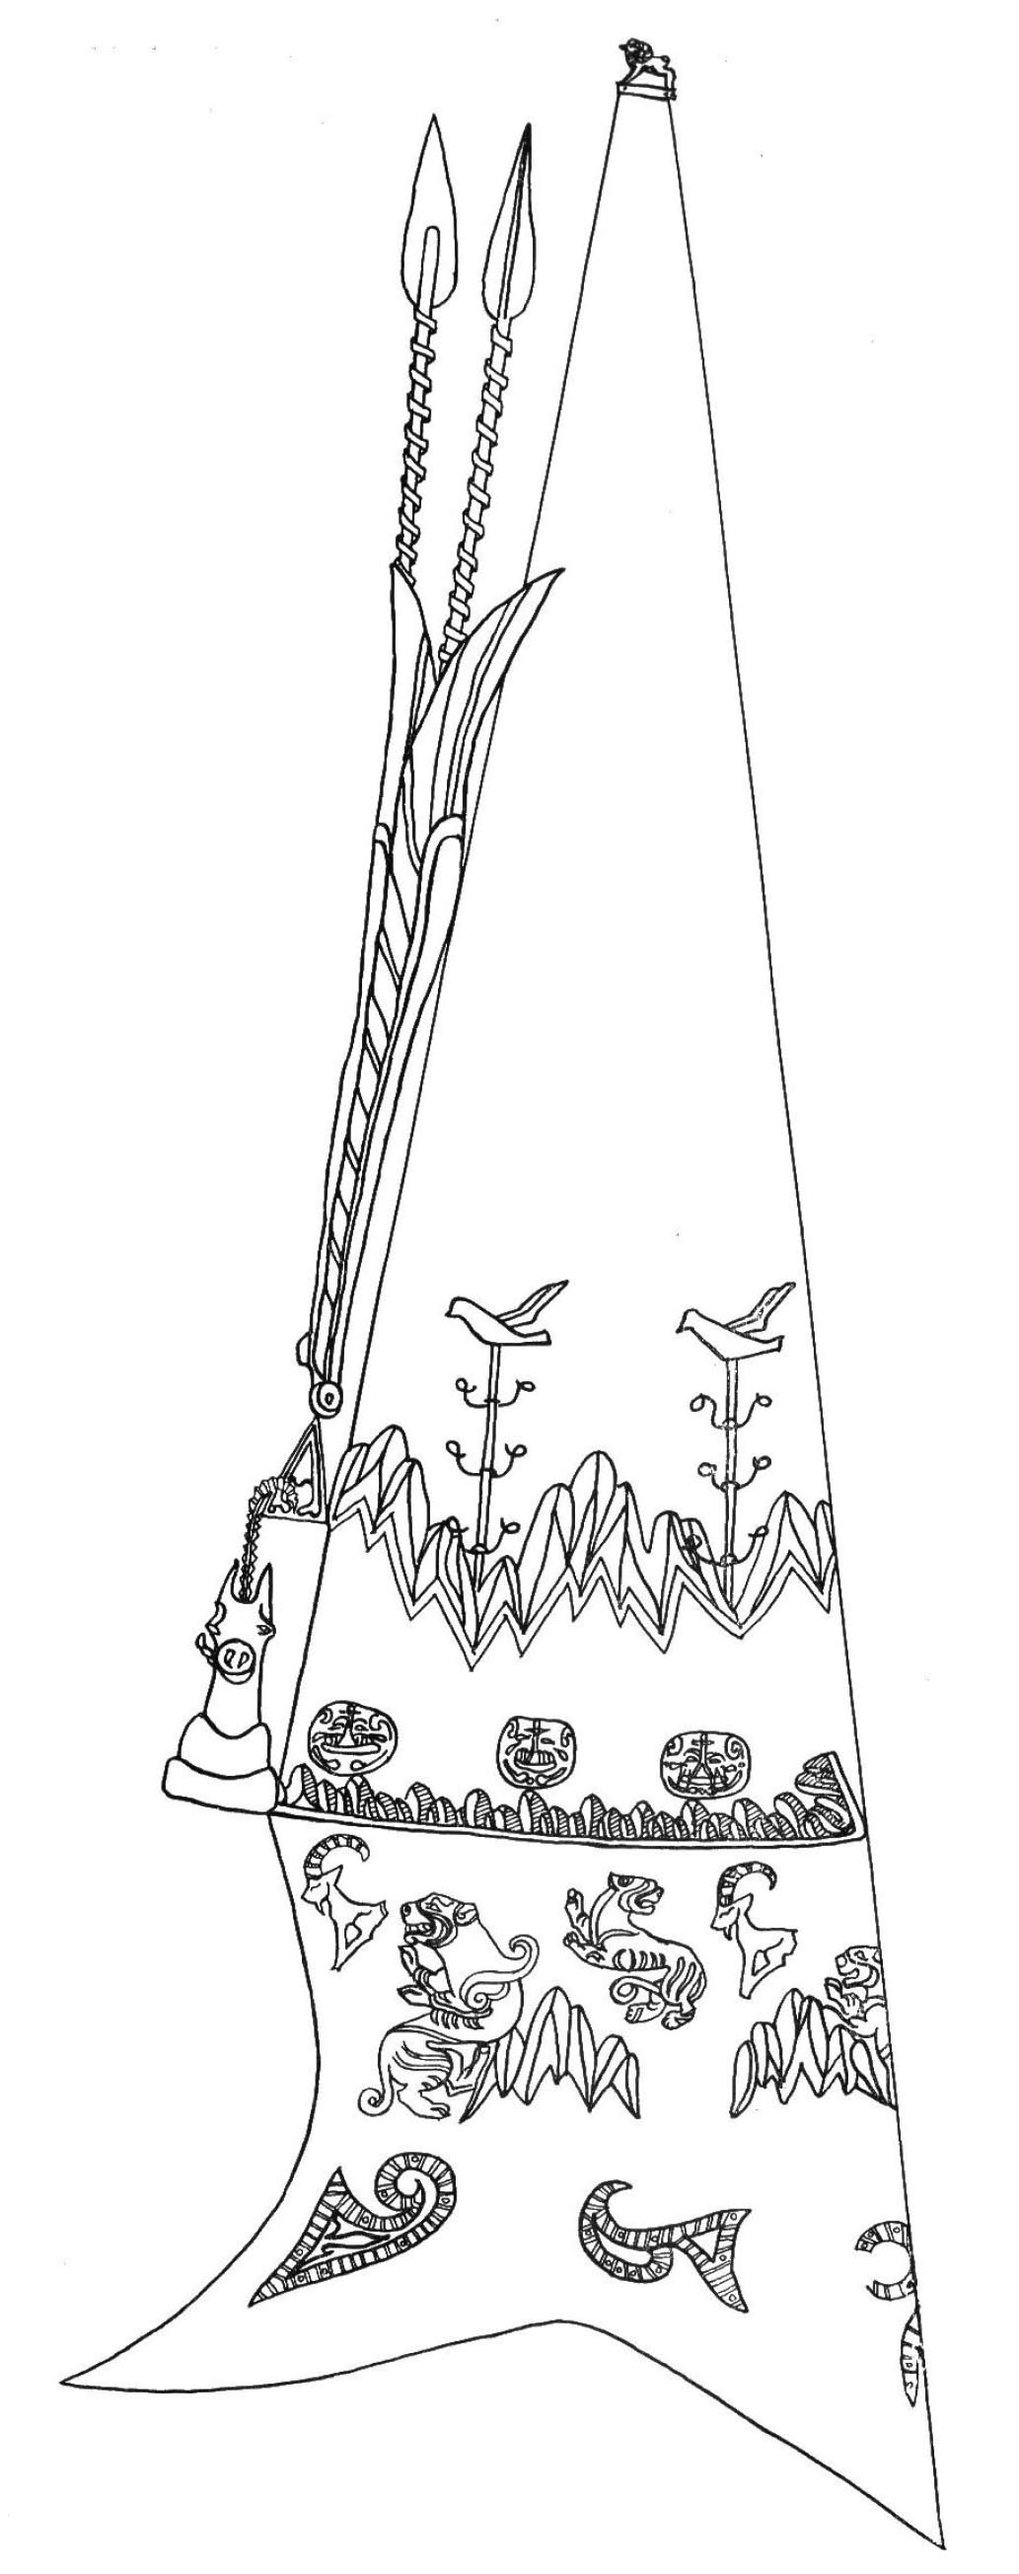 Drawing of the hat of the Golden Man depicting plants growing in mountain valleys.